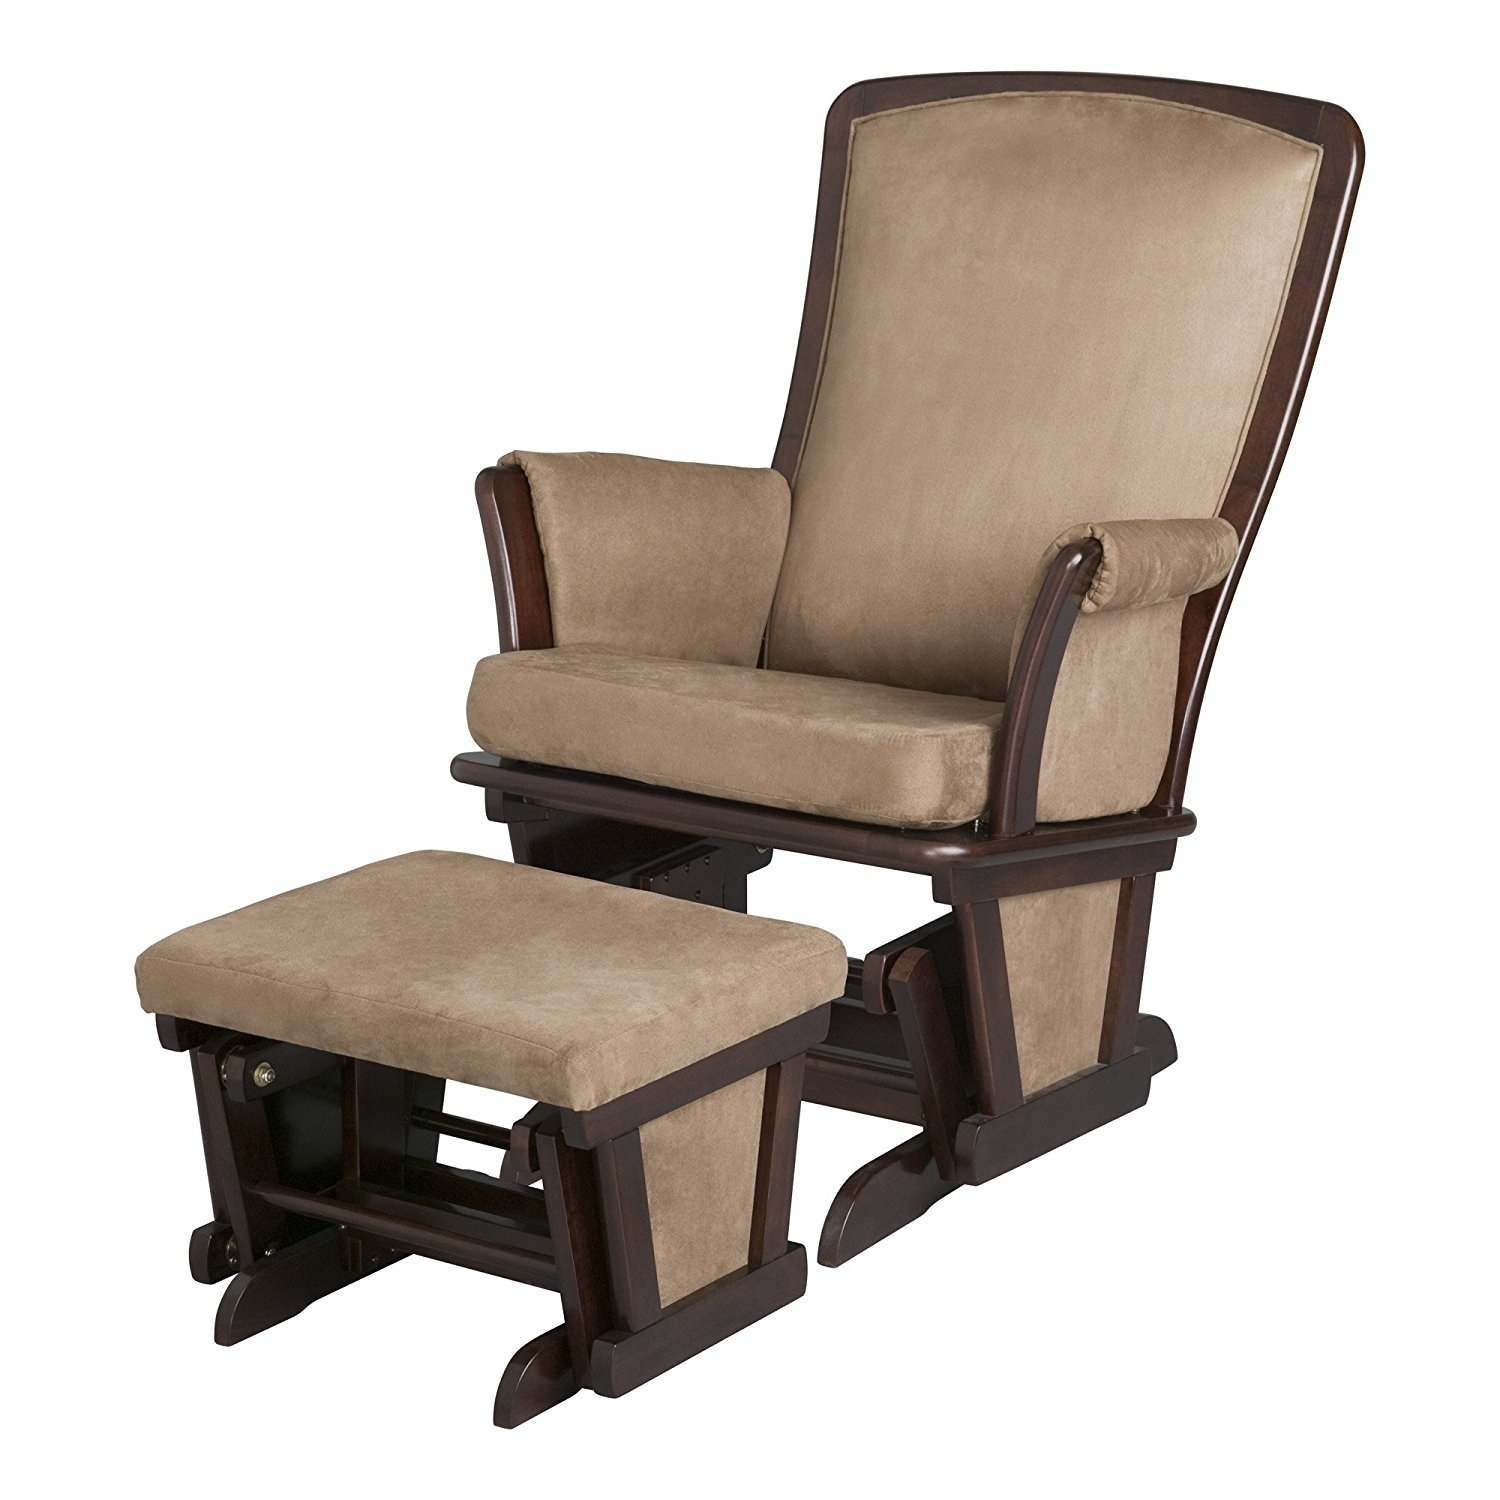 Chair | Wicker Rocking Chair High Back Upholstered Rocking Chair With Wicker Rocking Chairs And Ottoman (View 9 of 15)